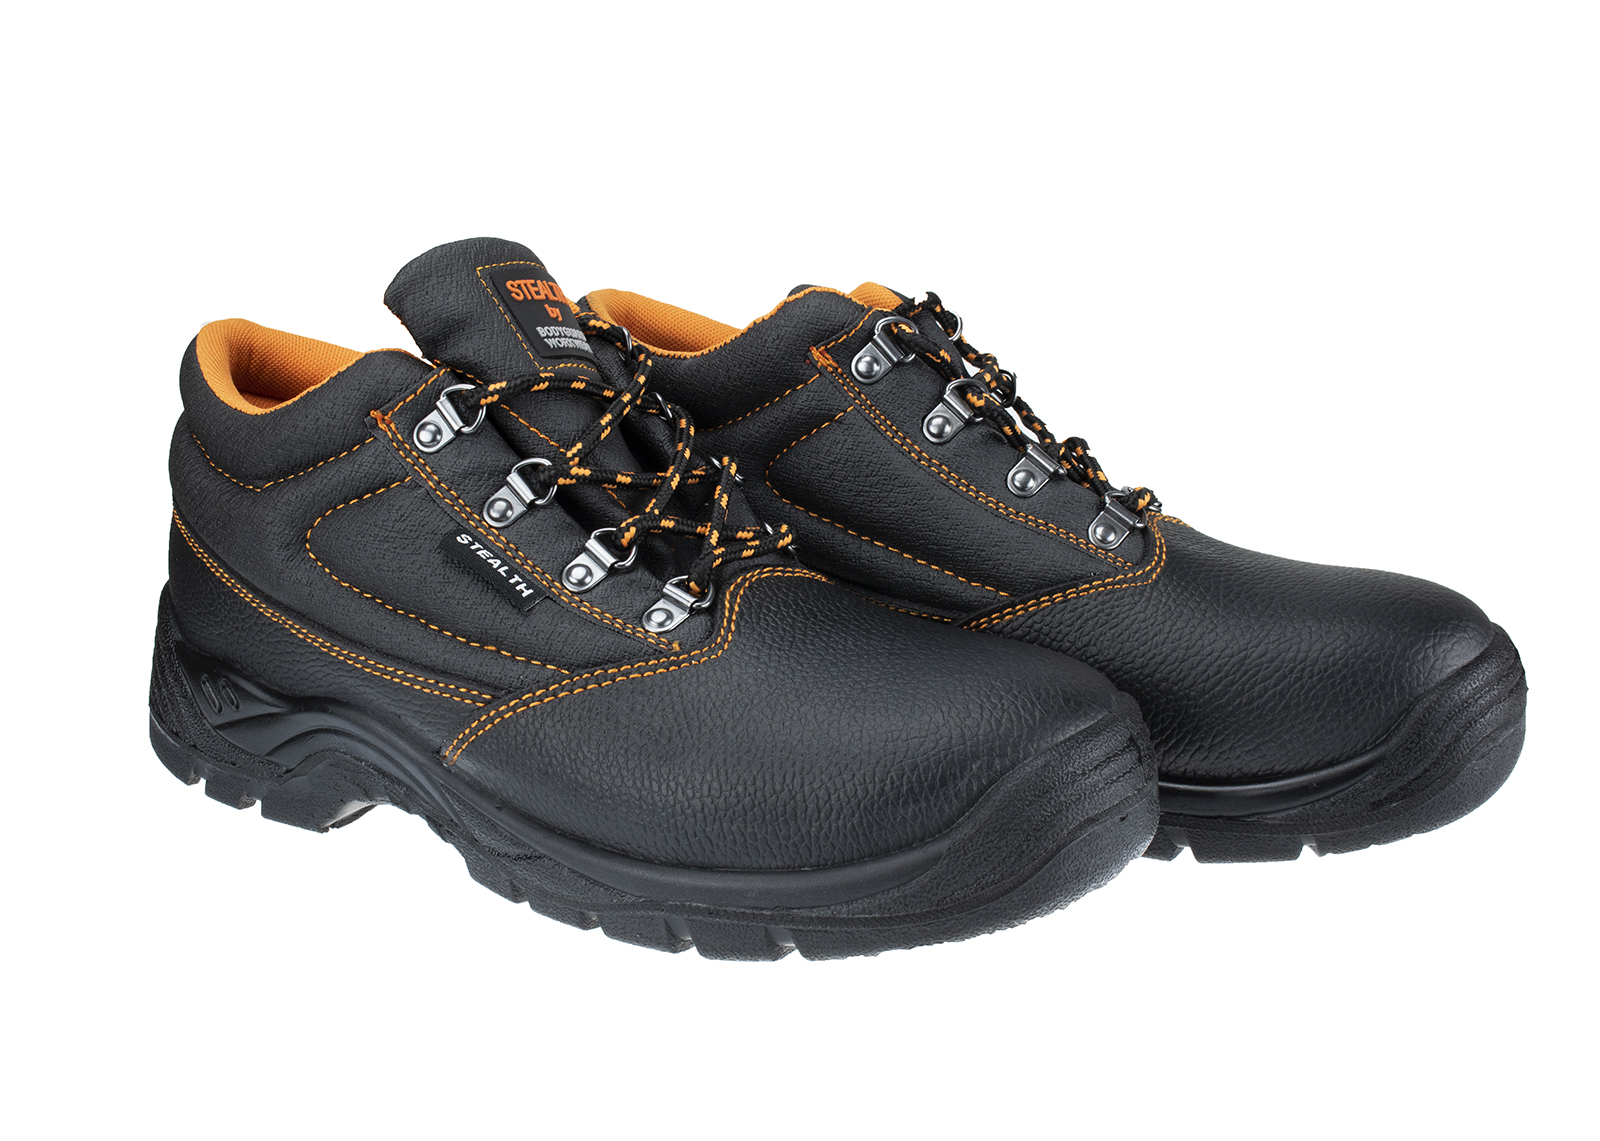 Stealth Leather Safety Boot w/ Padded collar & Dual density PU Sole - 3